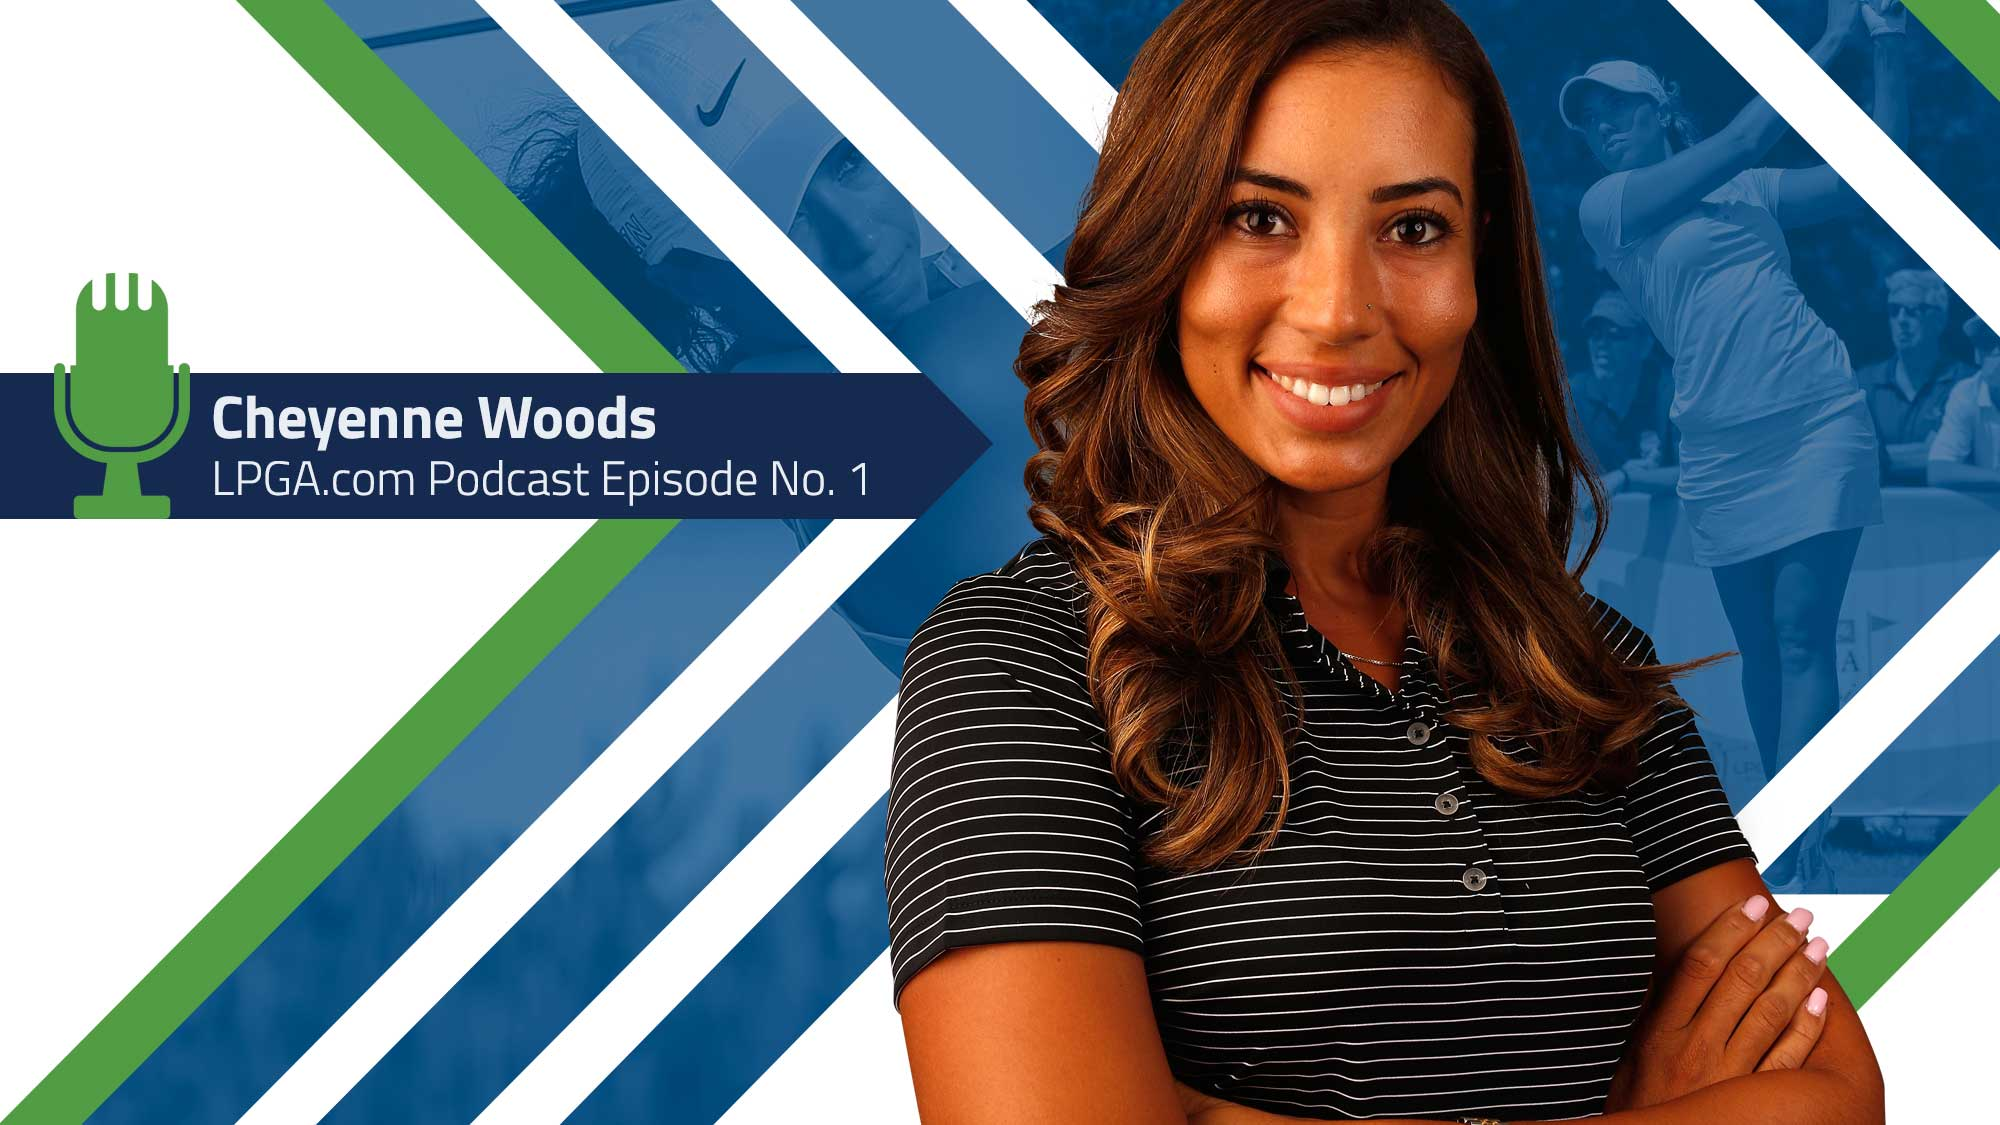 2016 lpga podcast with cheyenne woods episode 1